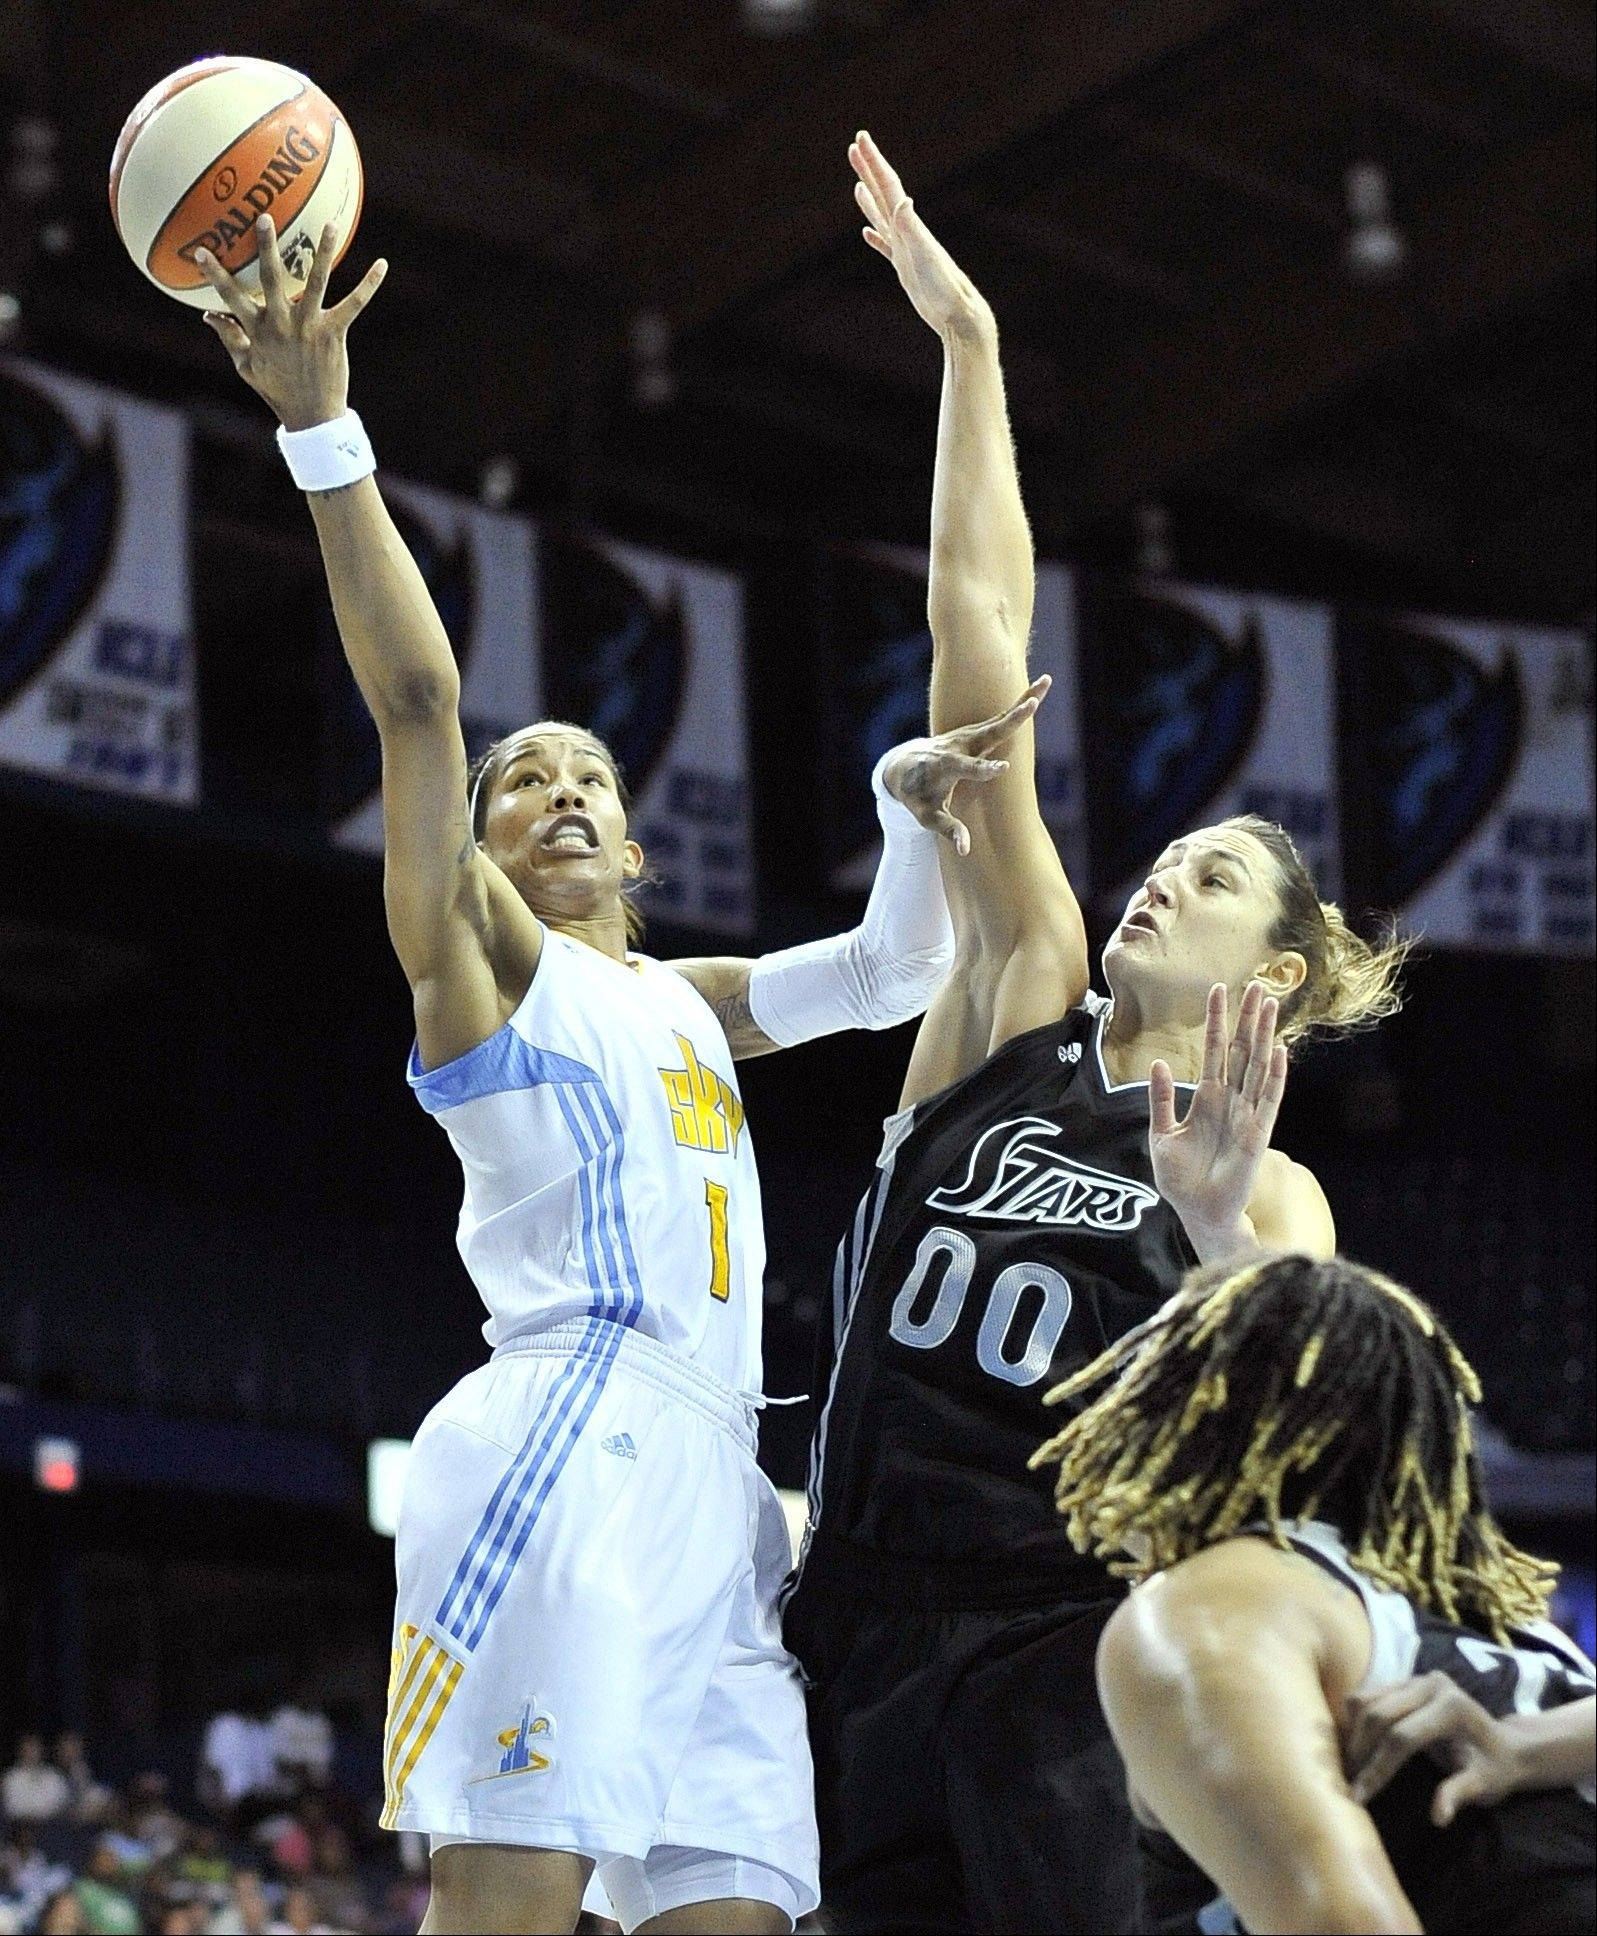 The Sky's Tamera Young fires up a shot against Silver Stars defender Ruth Riley on Tuesday at the Allstate Arena.